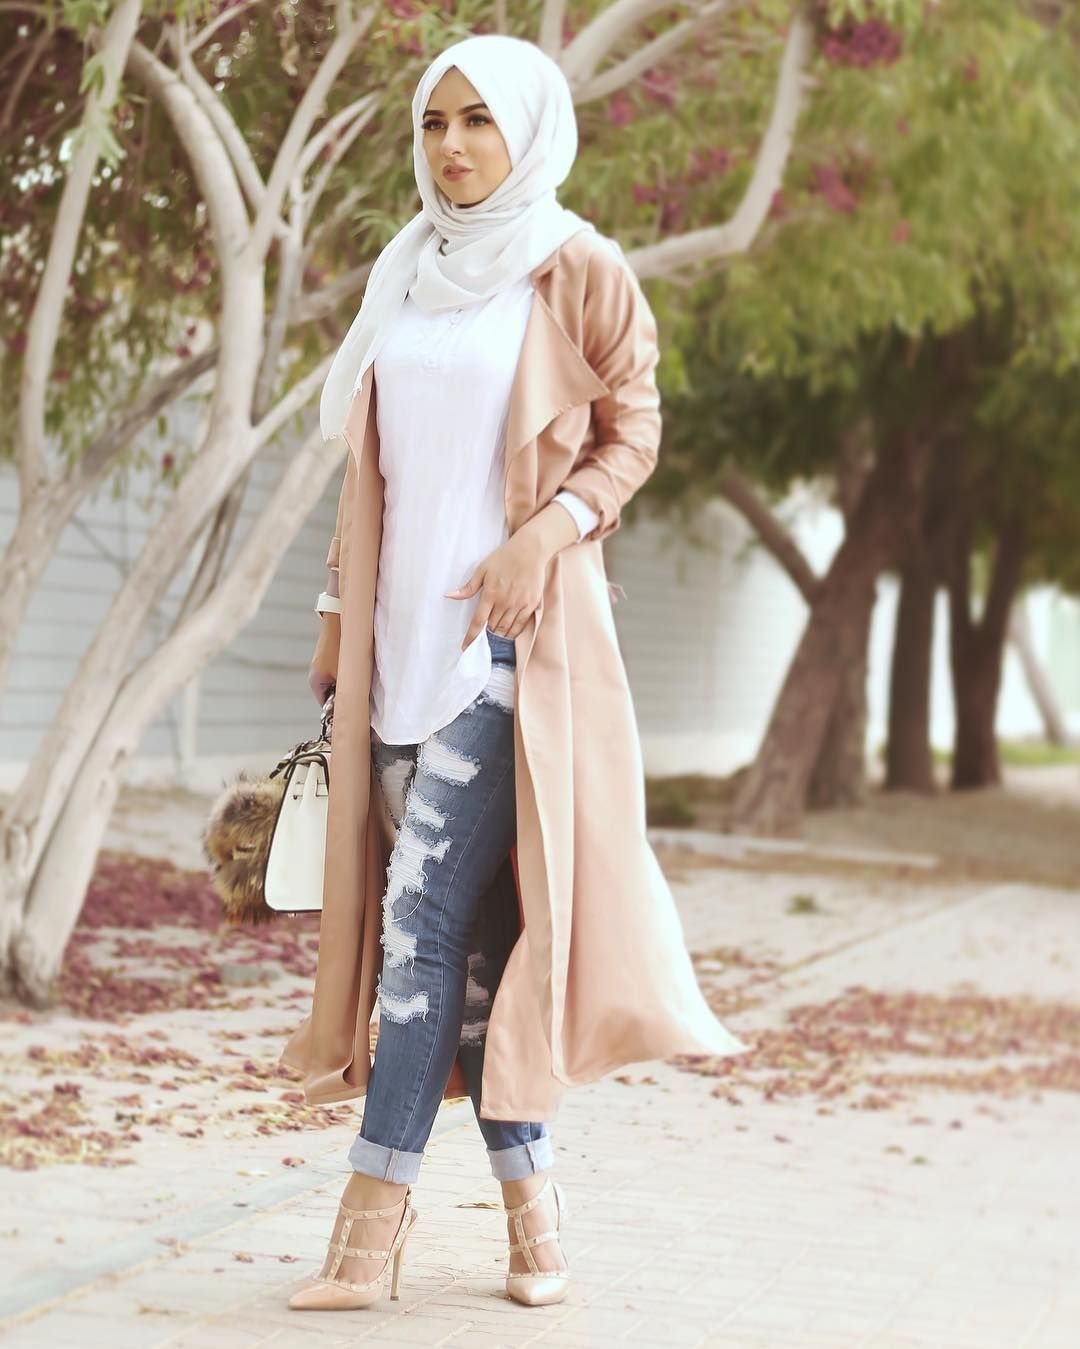 Just Own It Streetstyle Hijabfashion Fashionblogger Fashion Hijab Fashion Pinterest